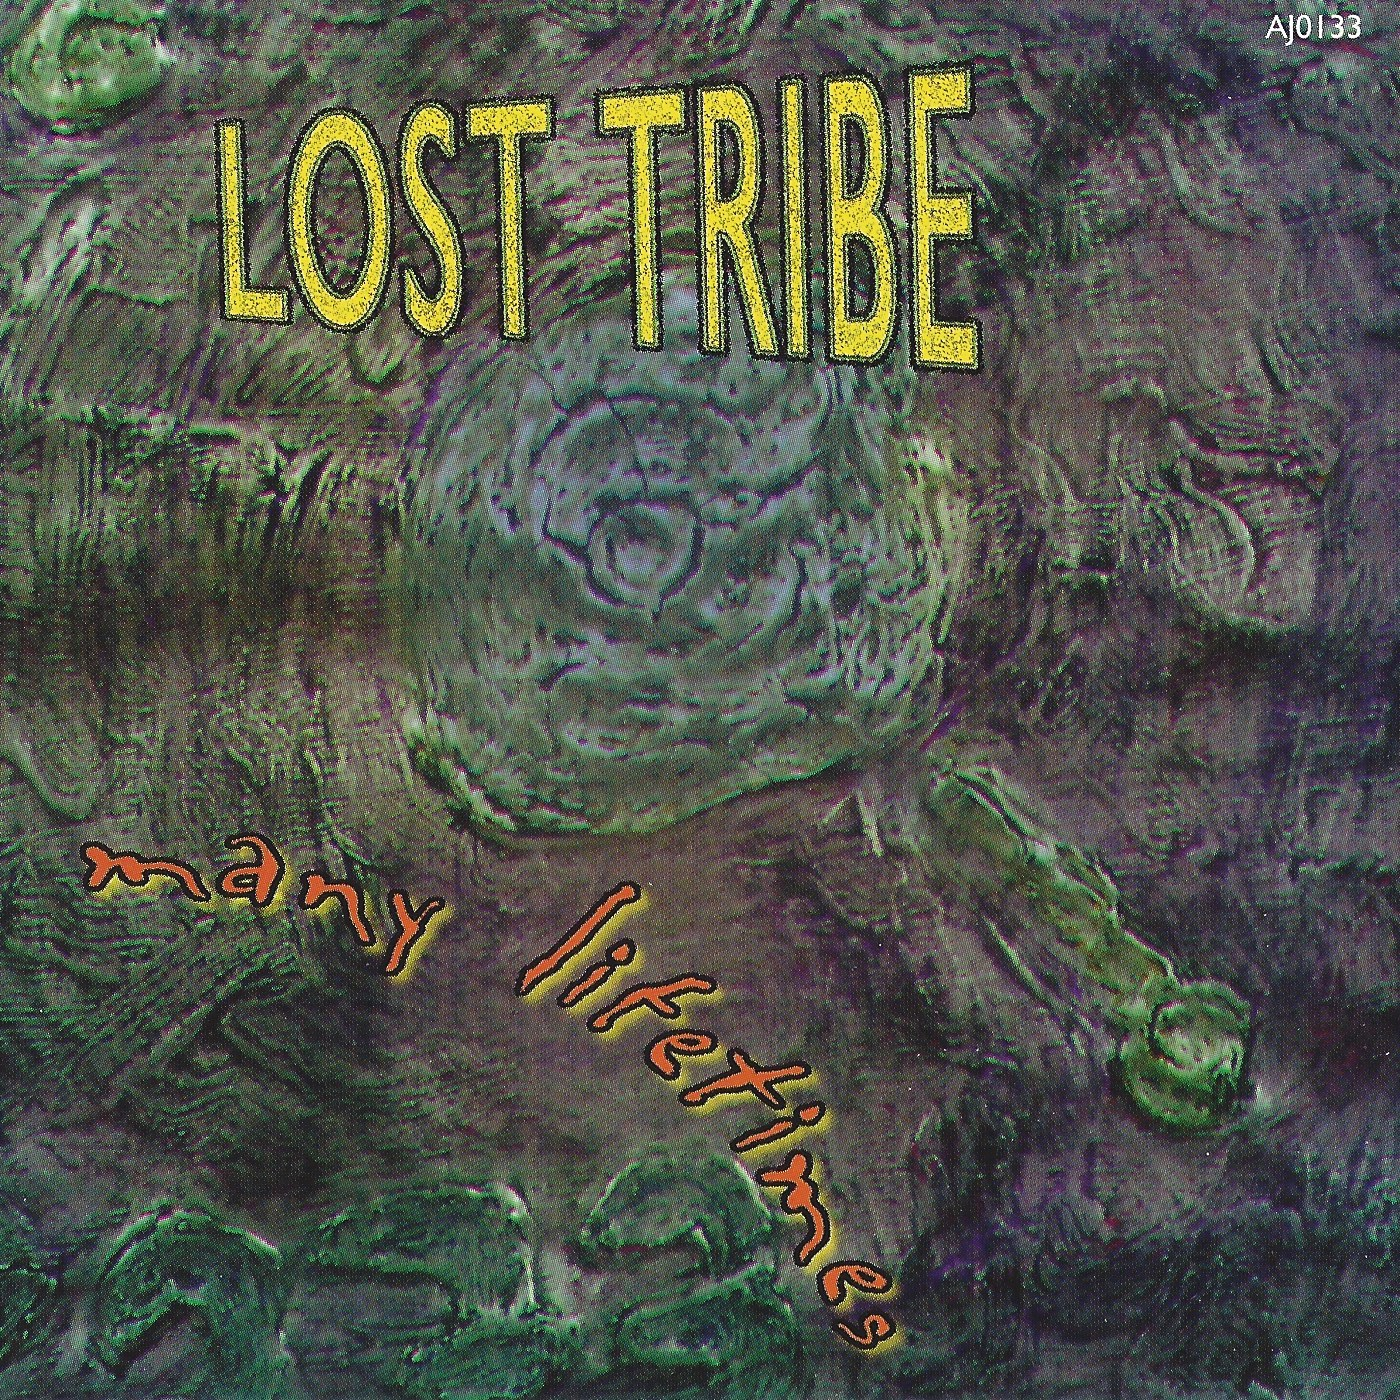 AJ0133  |   Many Lifetimes |  Lost Tribe